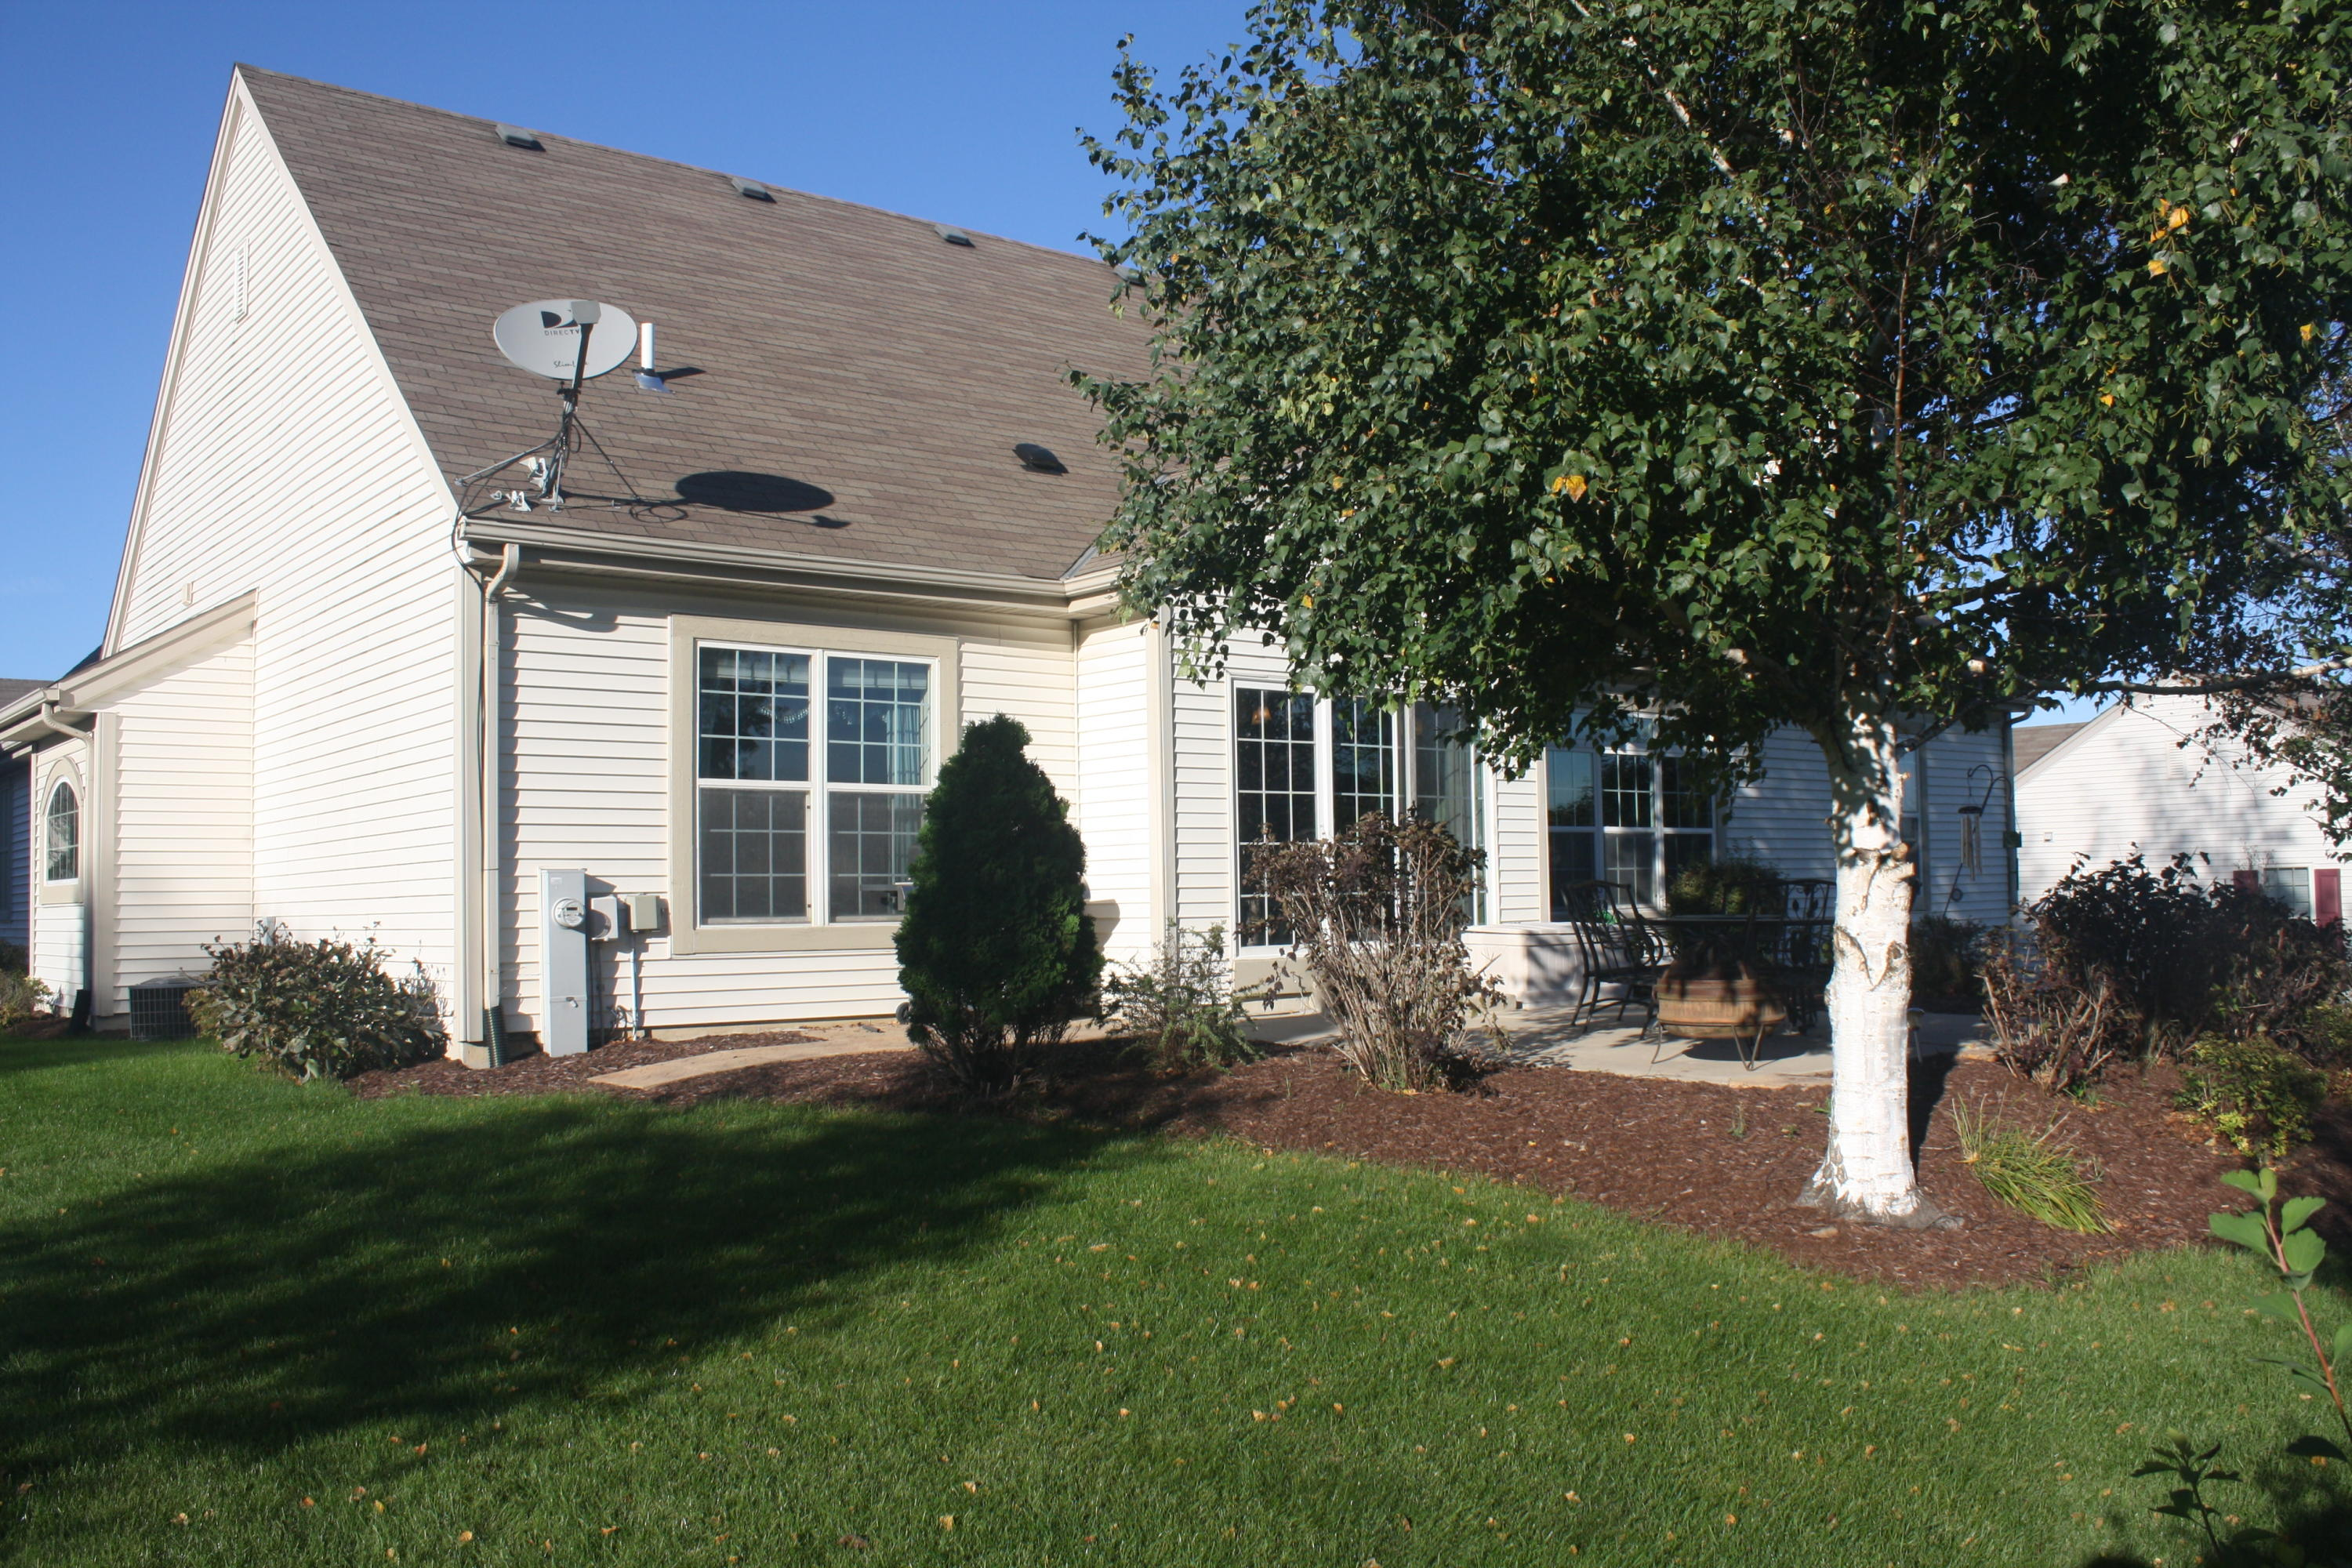 921 River Hill Dr, Waukesha, Wisconsin 53189, 3 Bedrooms Bedrooms, 6 Rooms Rooms,2 BathroomsBathrooms,Single-Family,For Sale,River Hill Dr,1609839